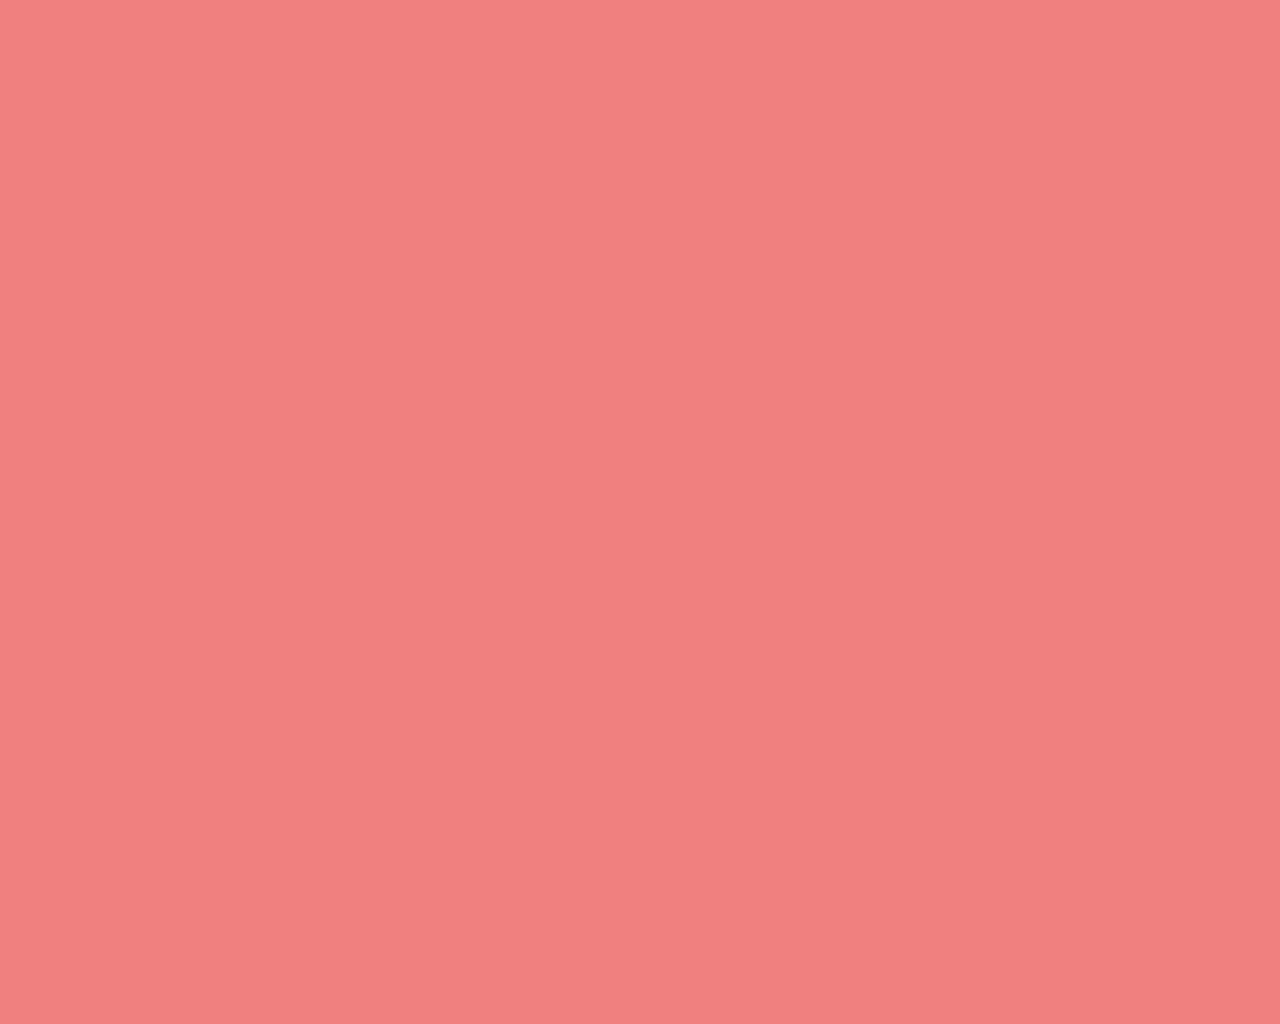 Light coral background